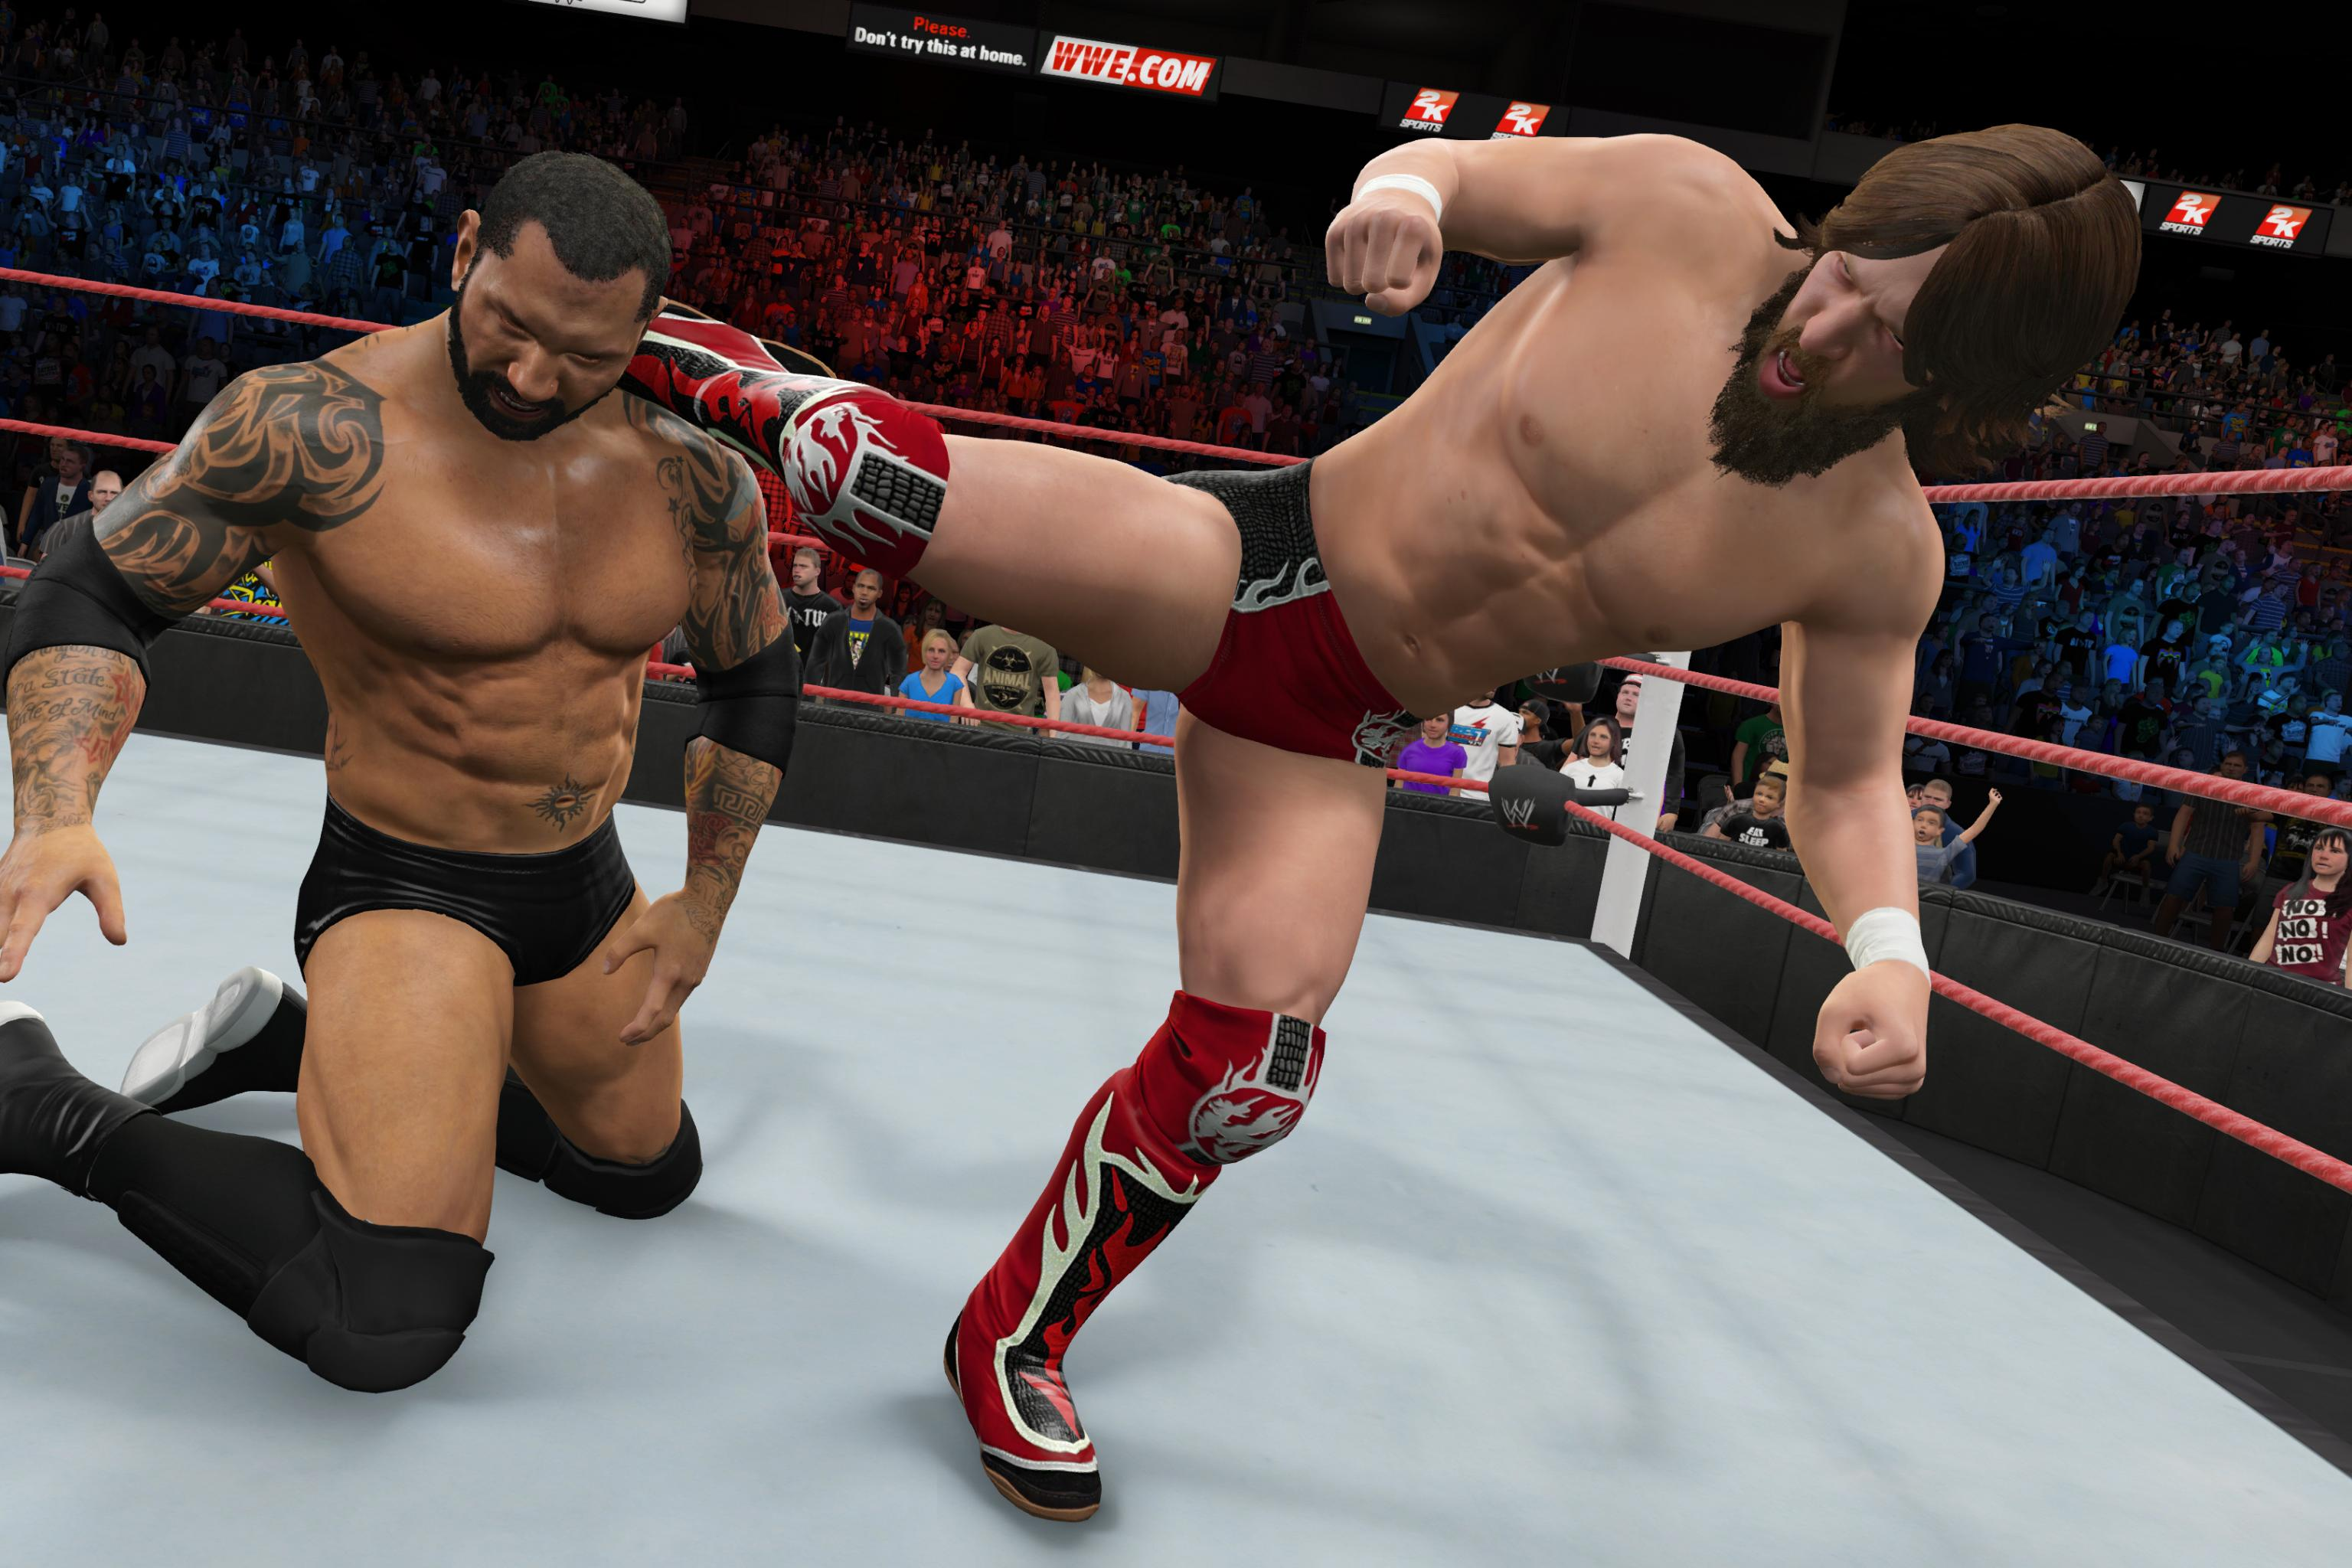 Wwe 2k15 For Pc Free Full Version